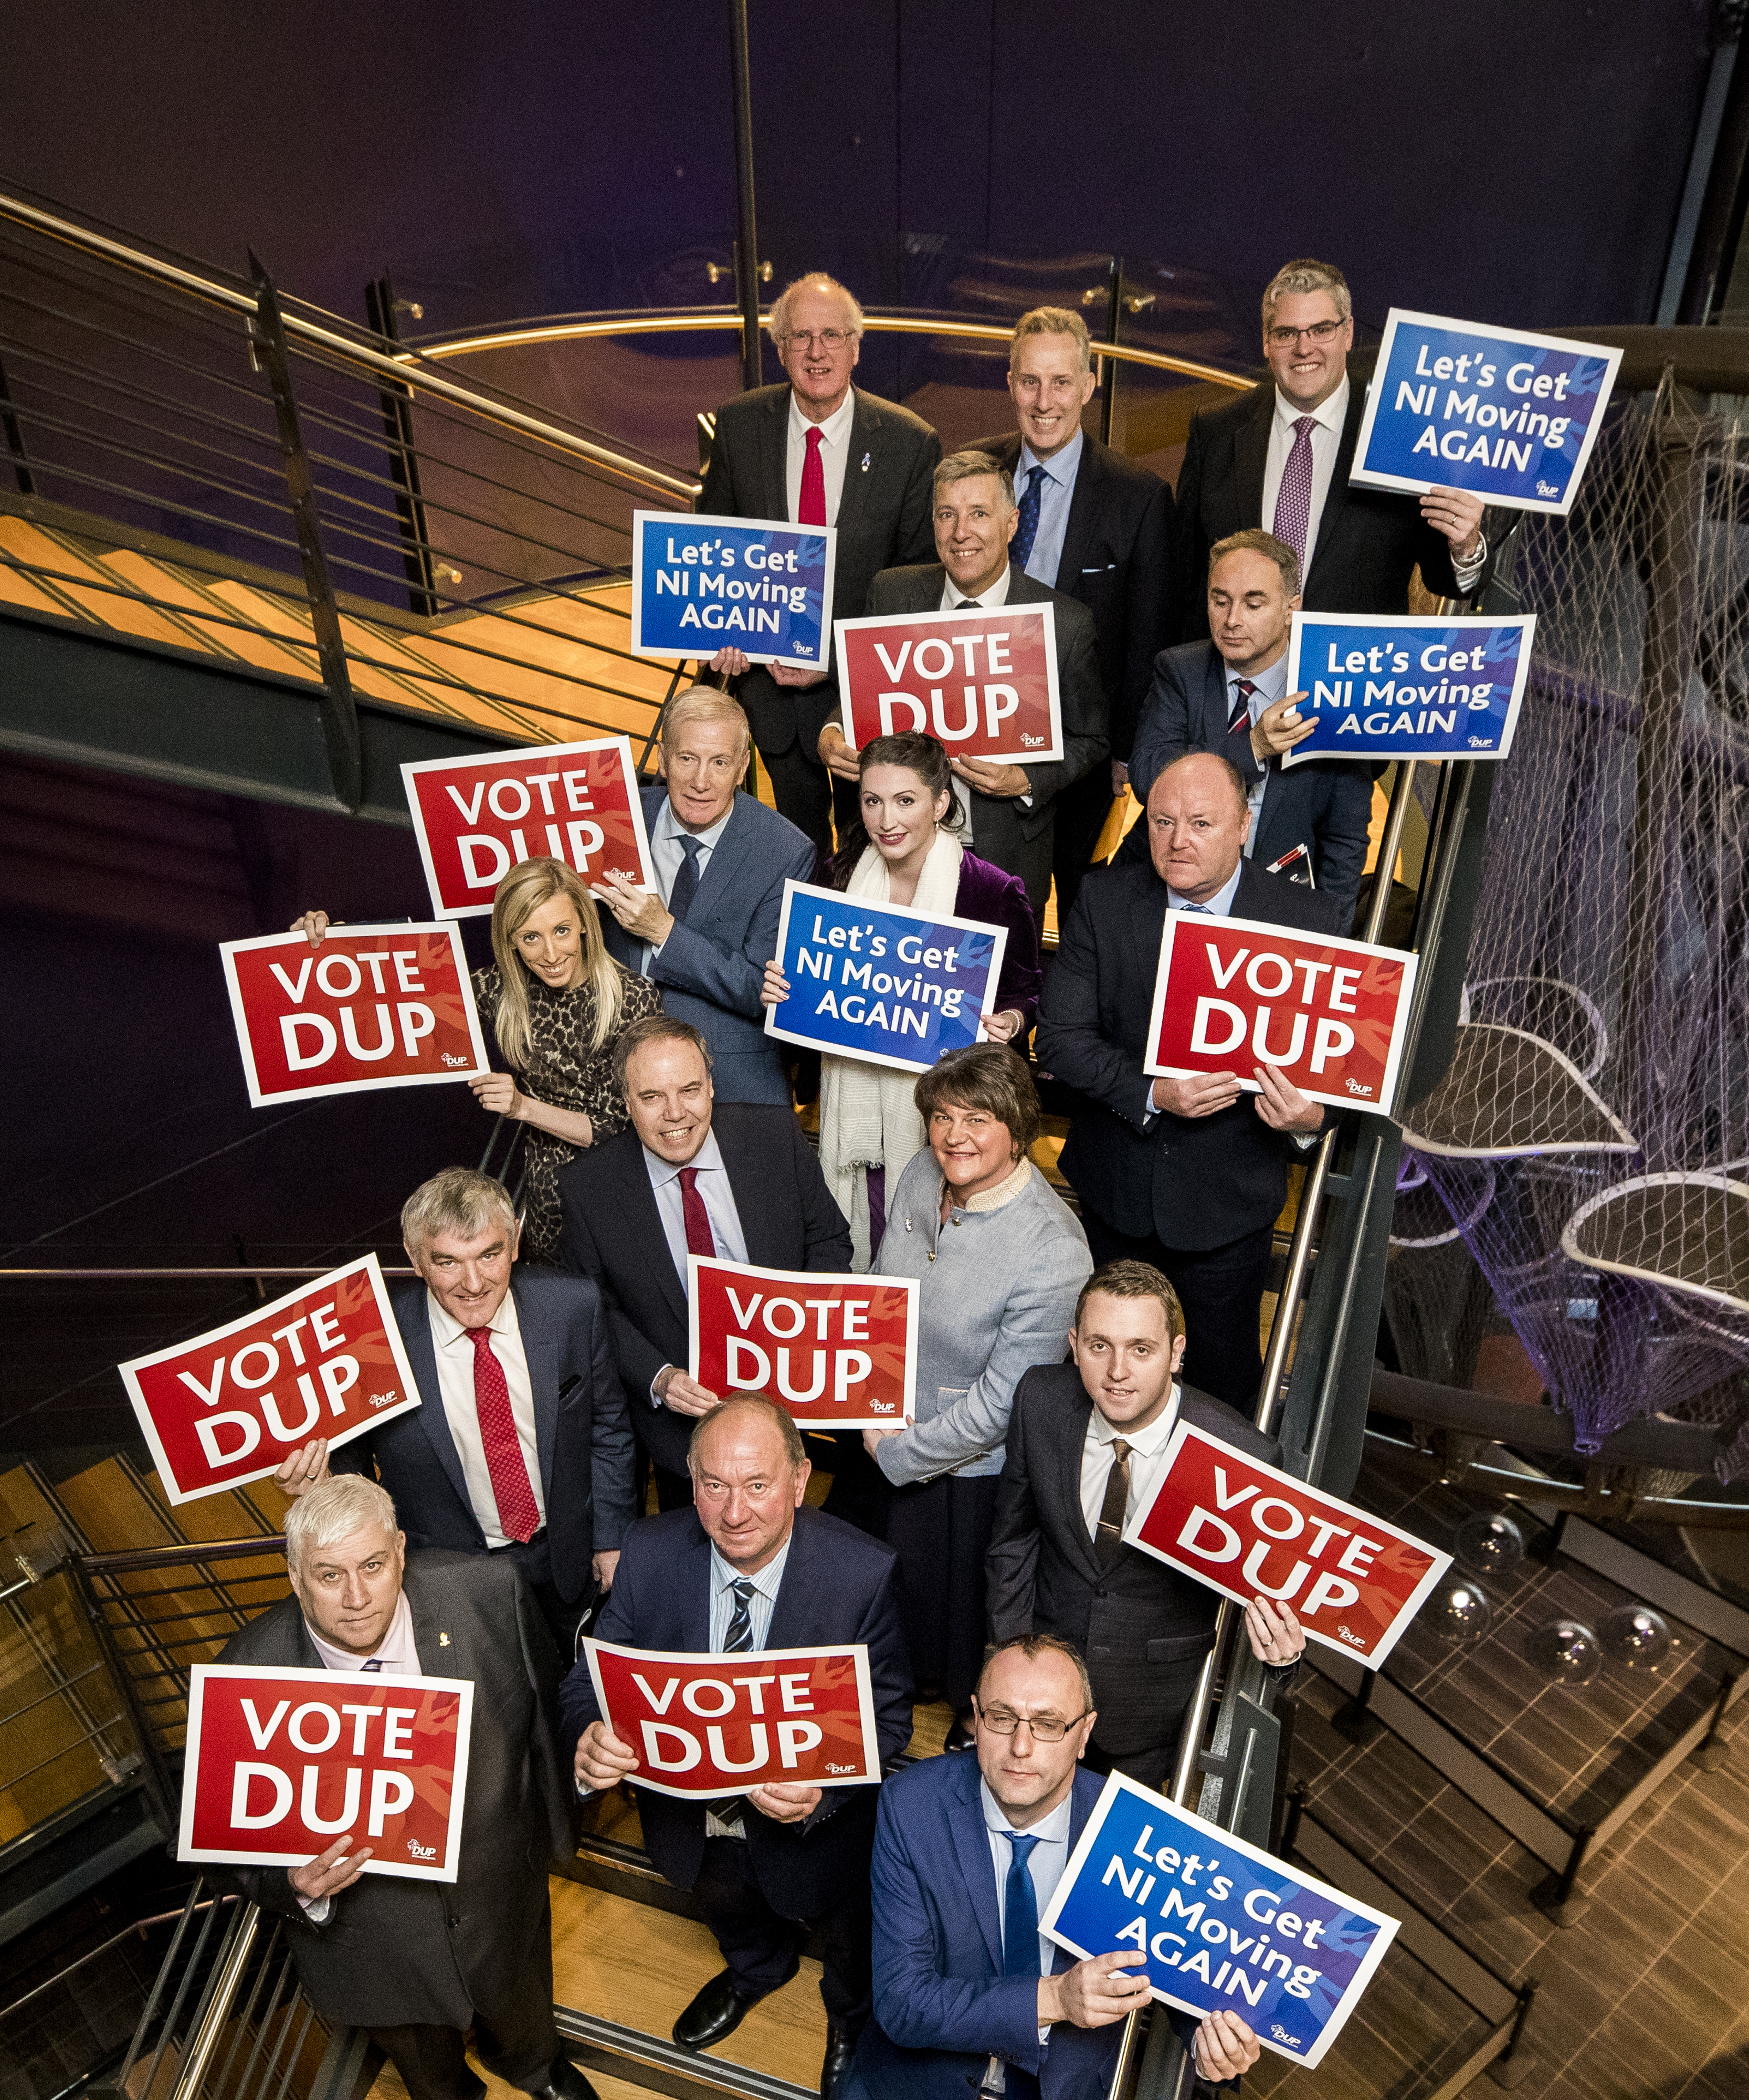 DUP leader Arlene Foster with party colleagues who are due to stand in the upcoming General Election pose after the launch of a new policy plan at W5 in Belfast.